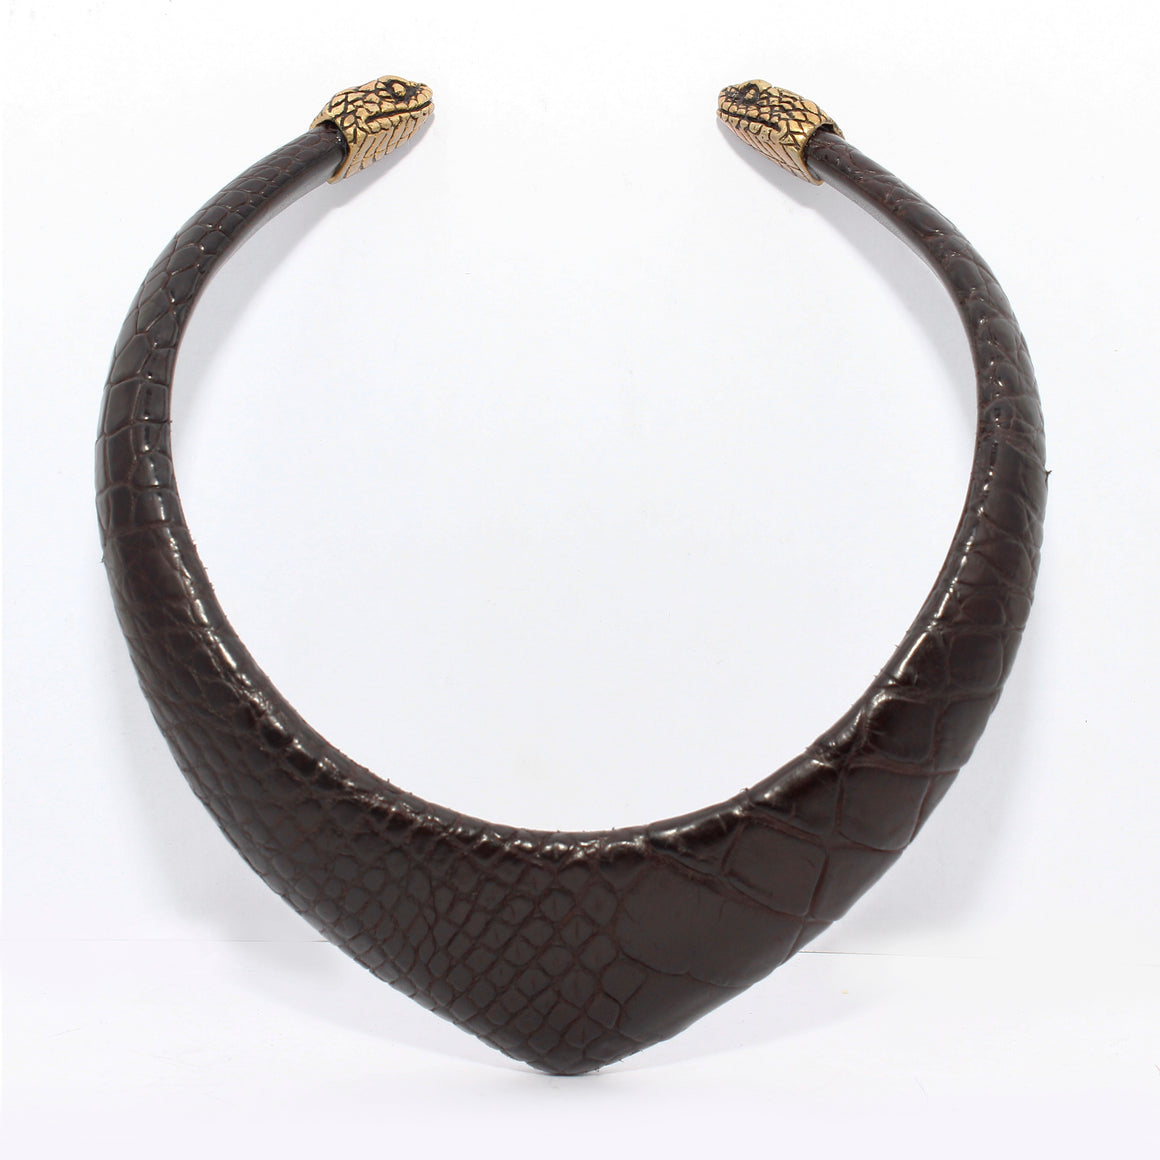 Pyramid crocodile Choker with chameleon cap's